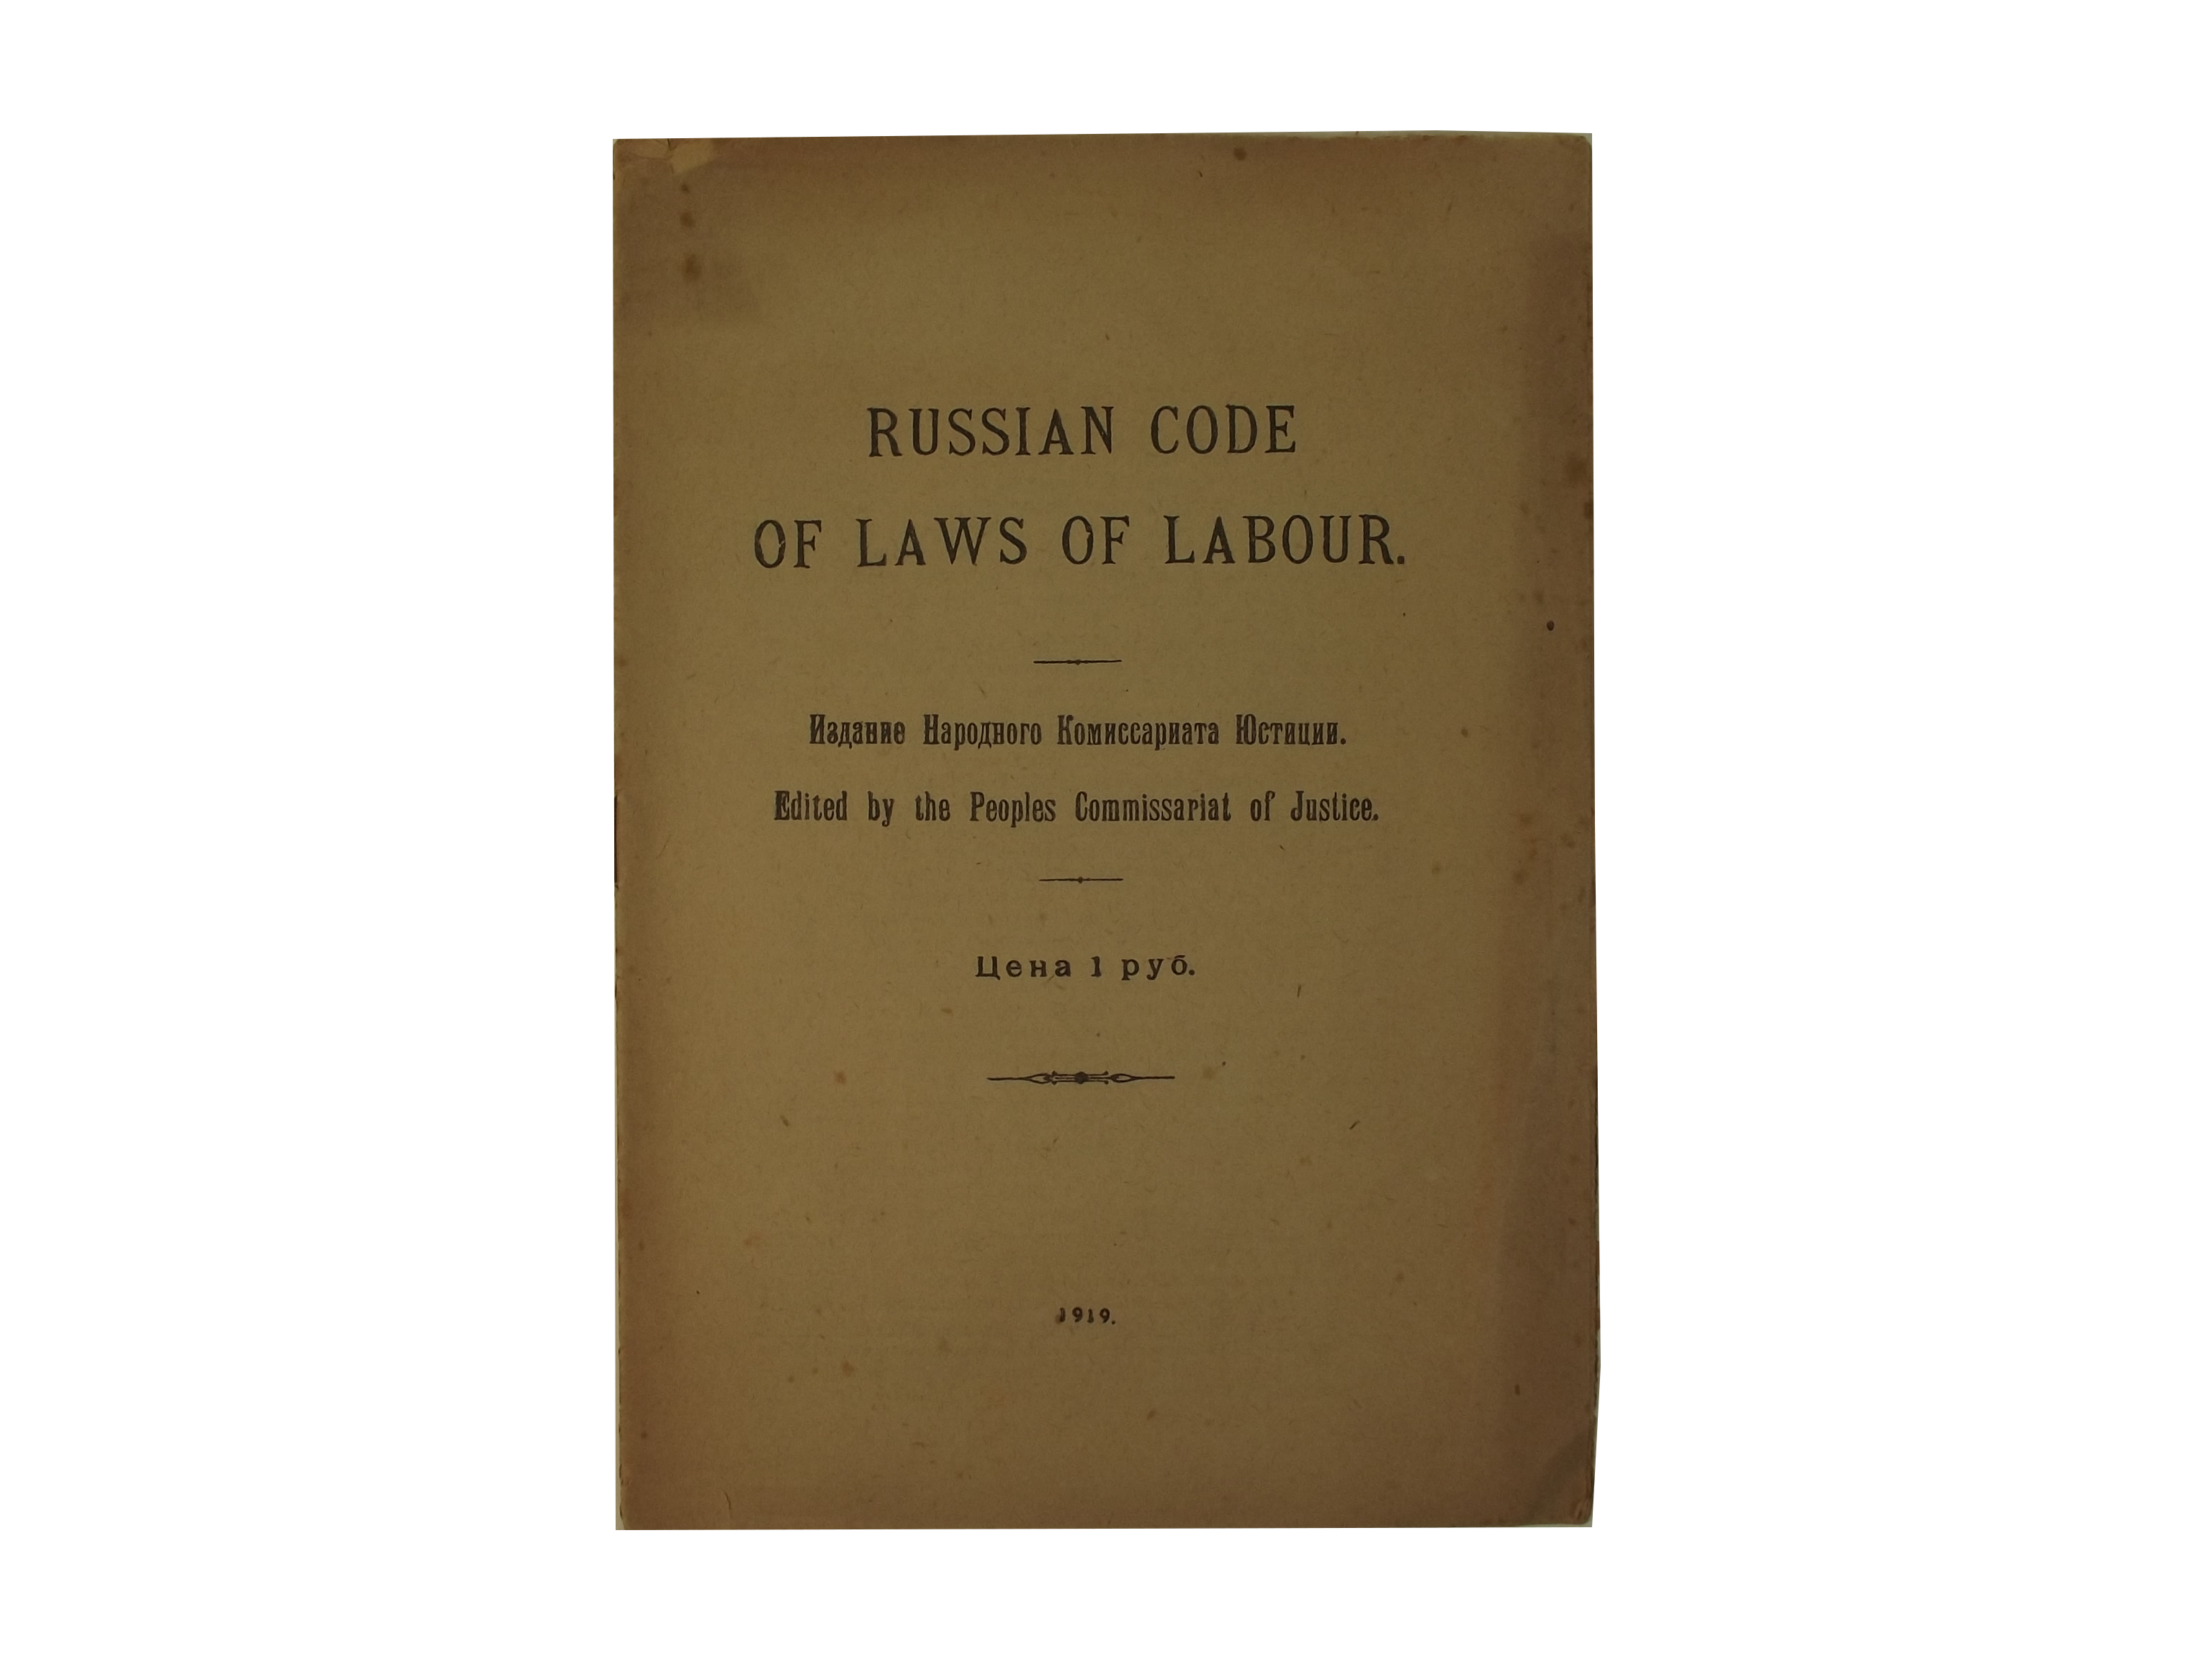 Russian Code of Laws of Labour